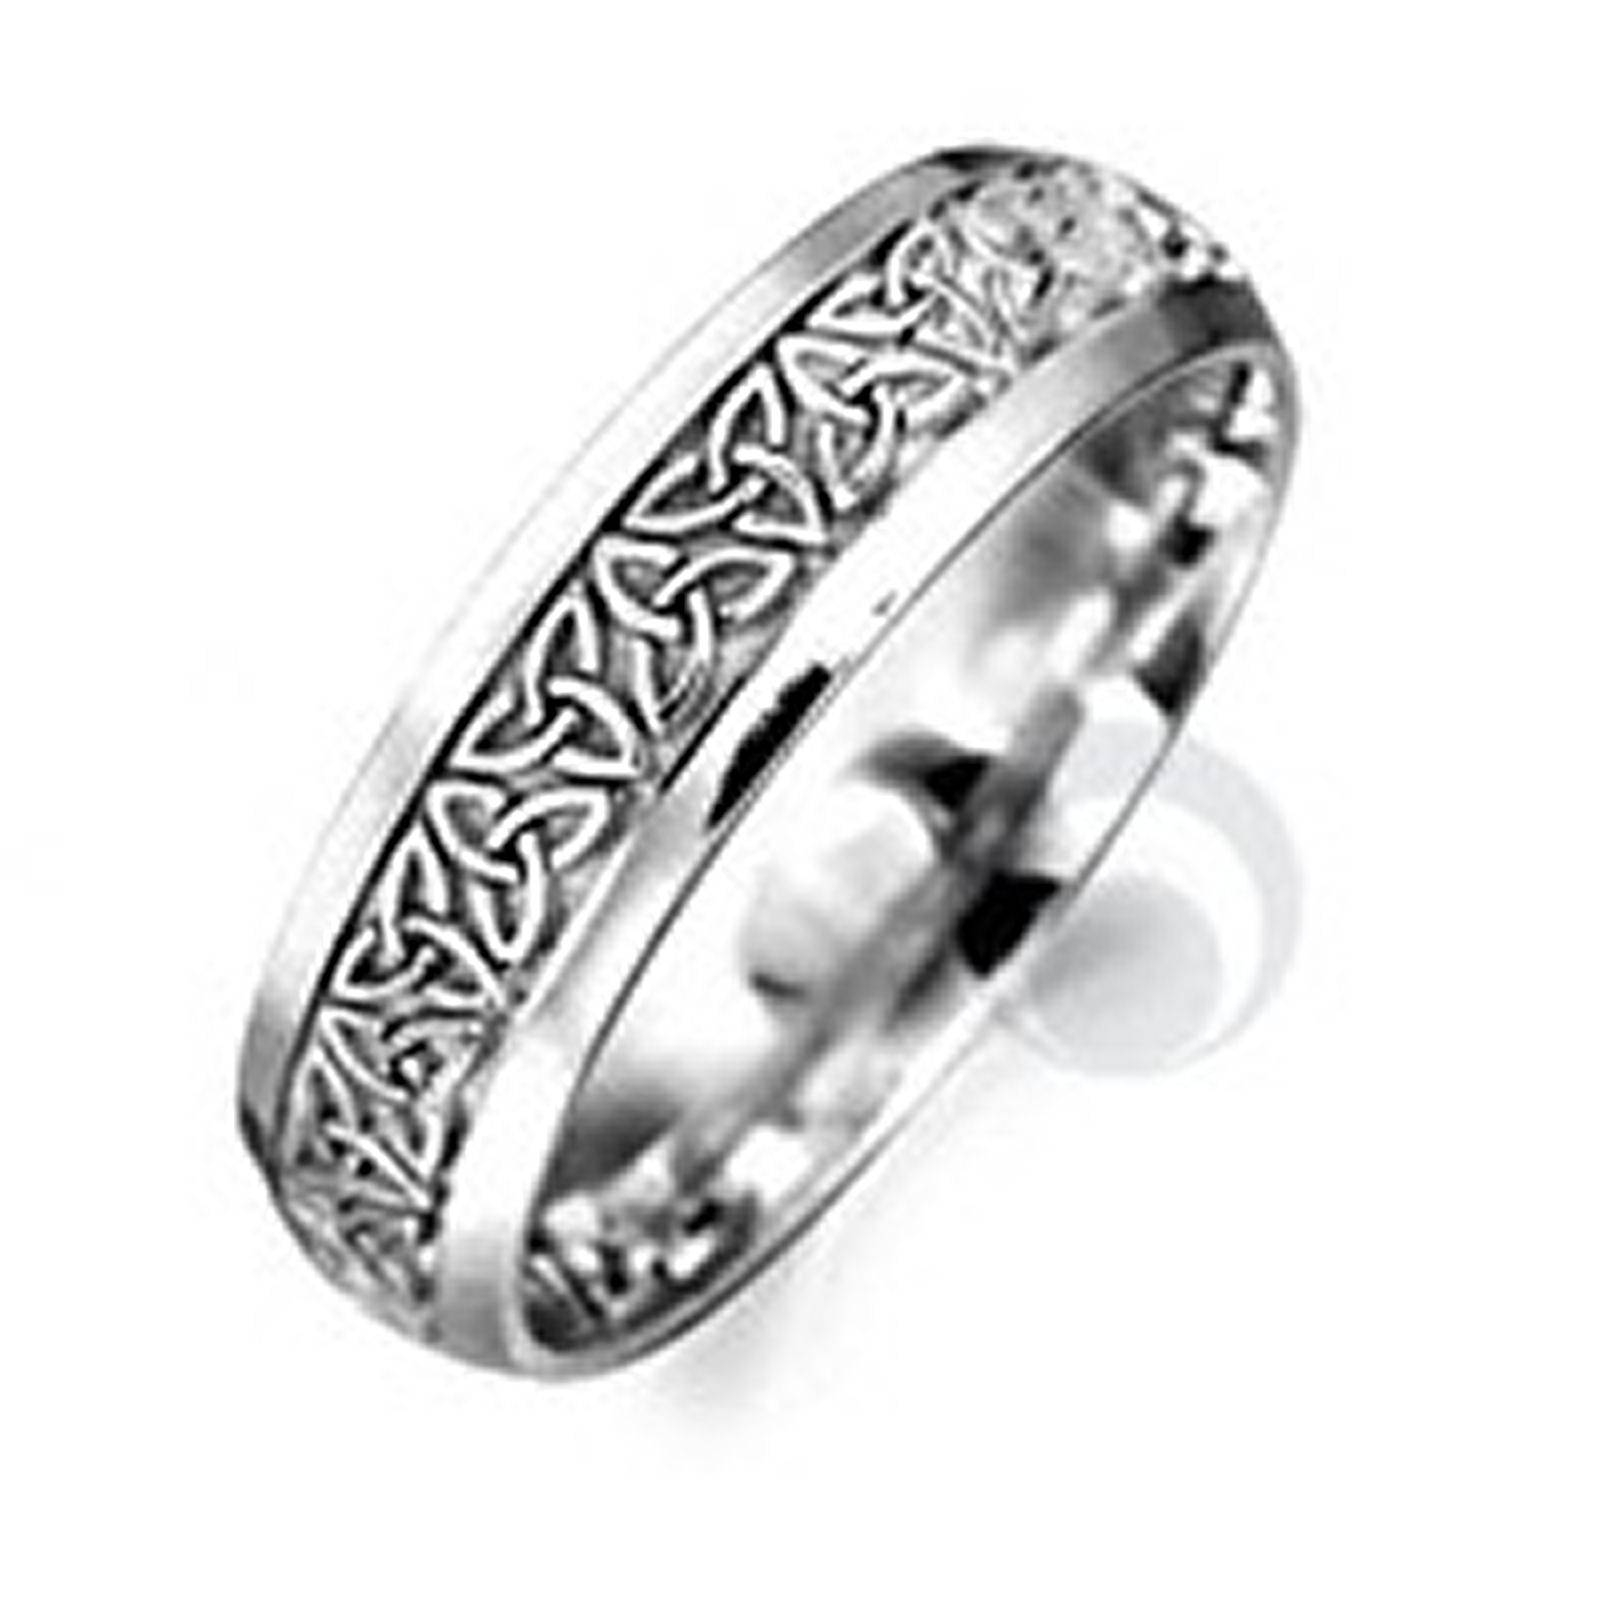 Celtic Patterned Platinum Wedding Ring Wedding Dress From The Within Most Recently Released Platnium Wedding Bands (View 7 of 15)